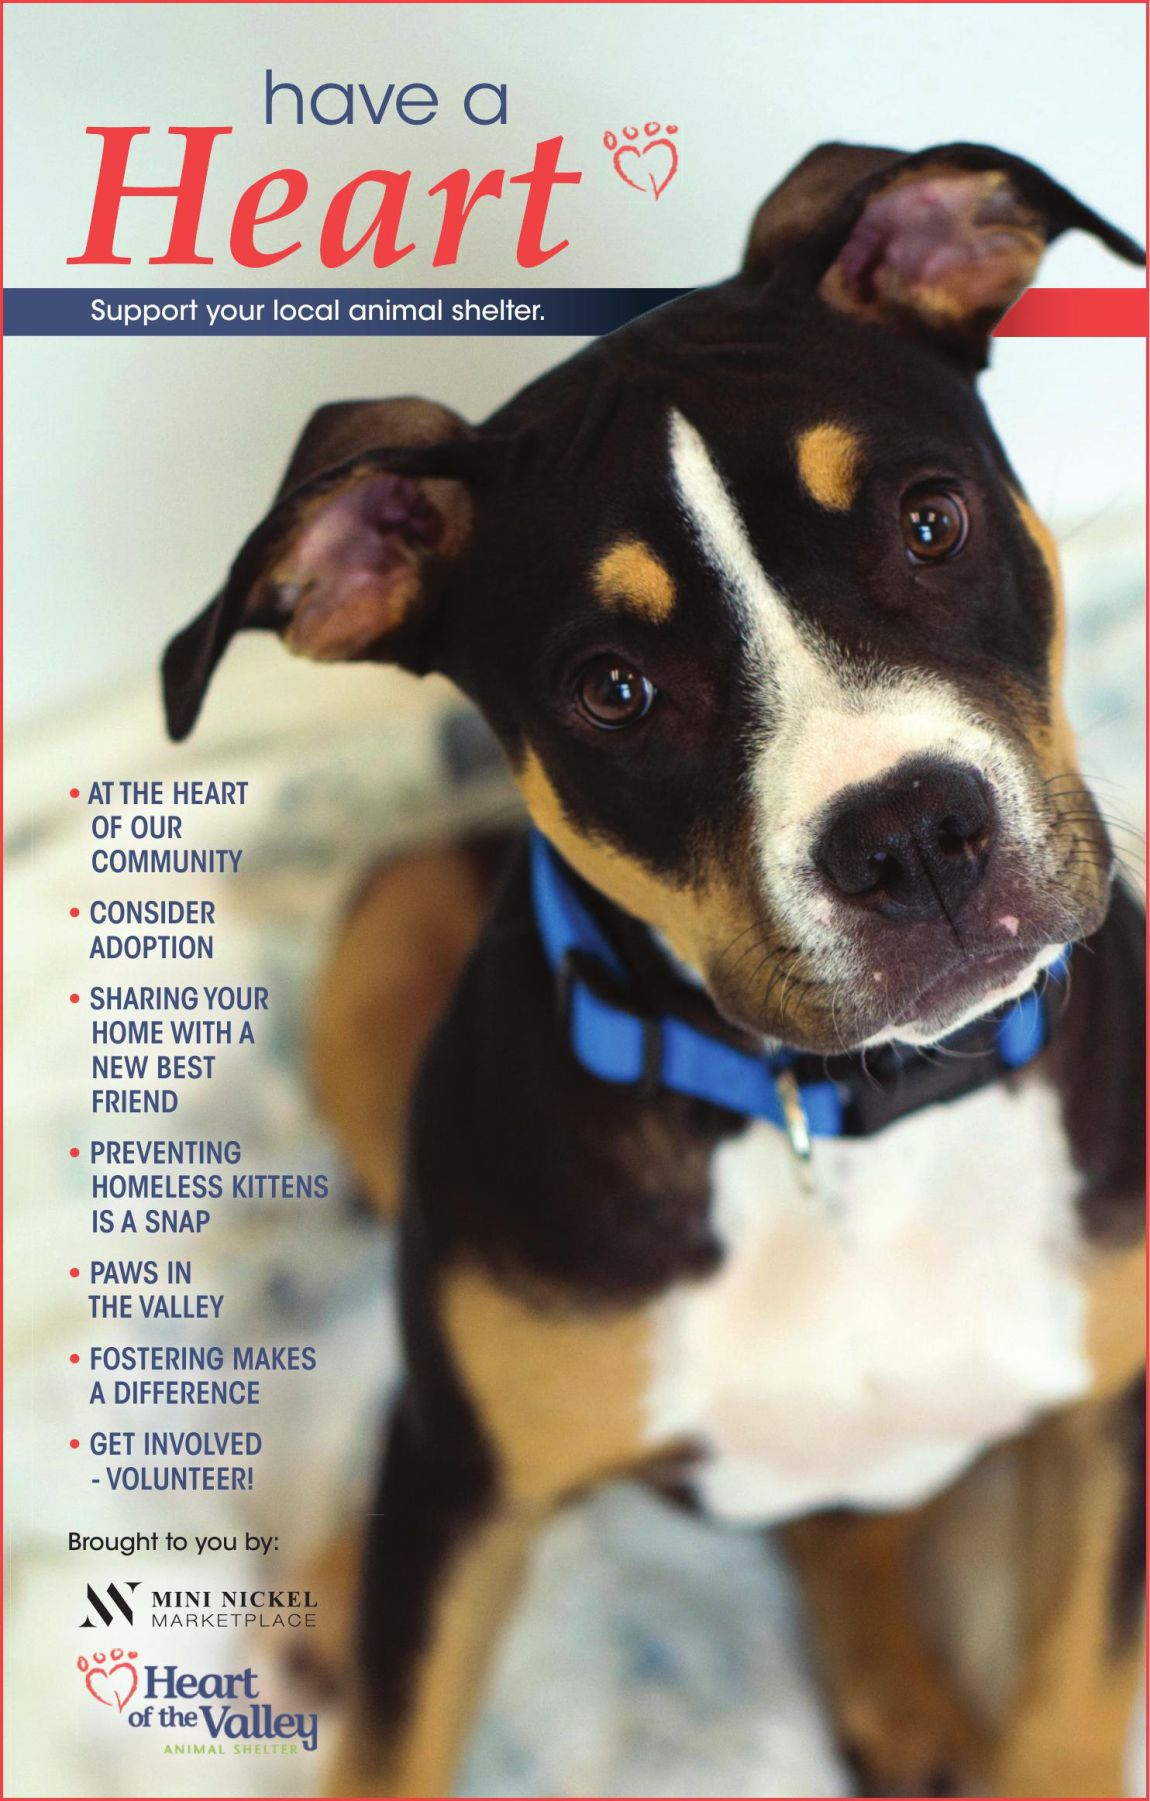 Have A Heart - Support Your Local Animal Shelter